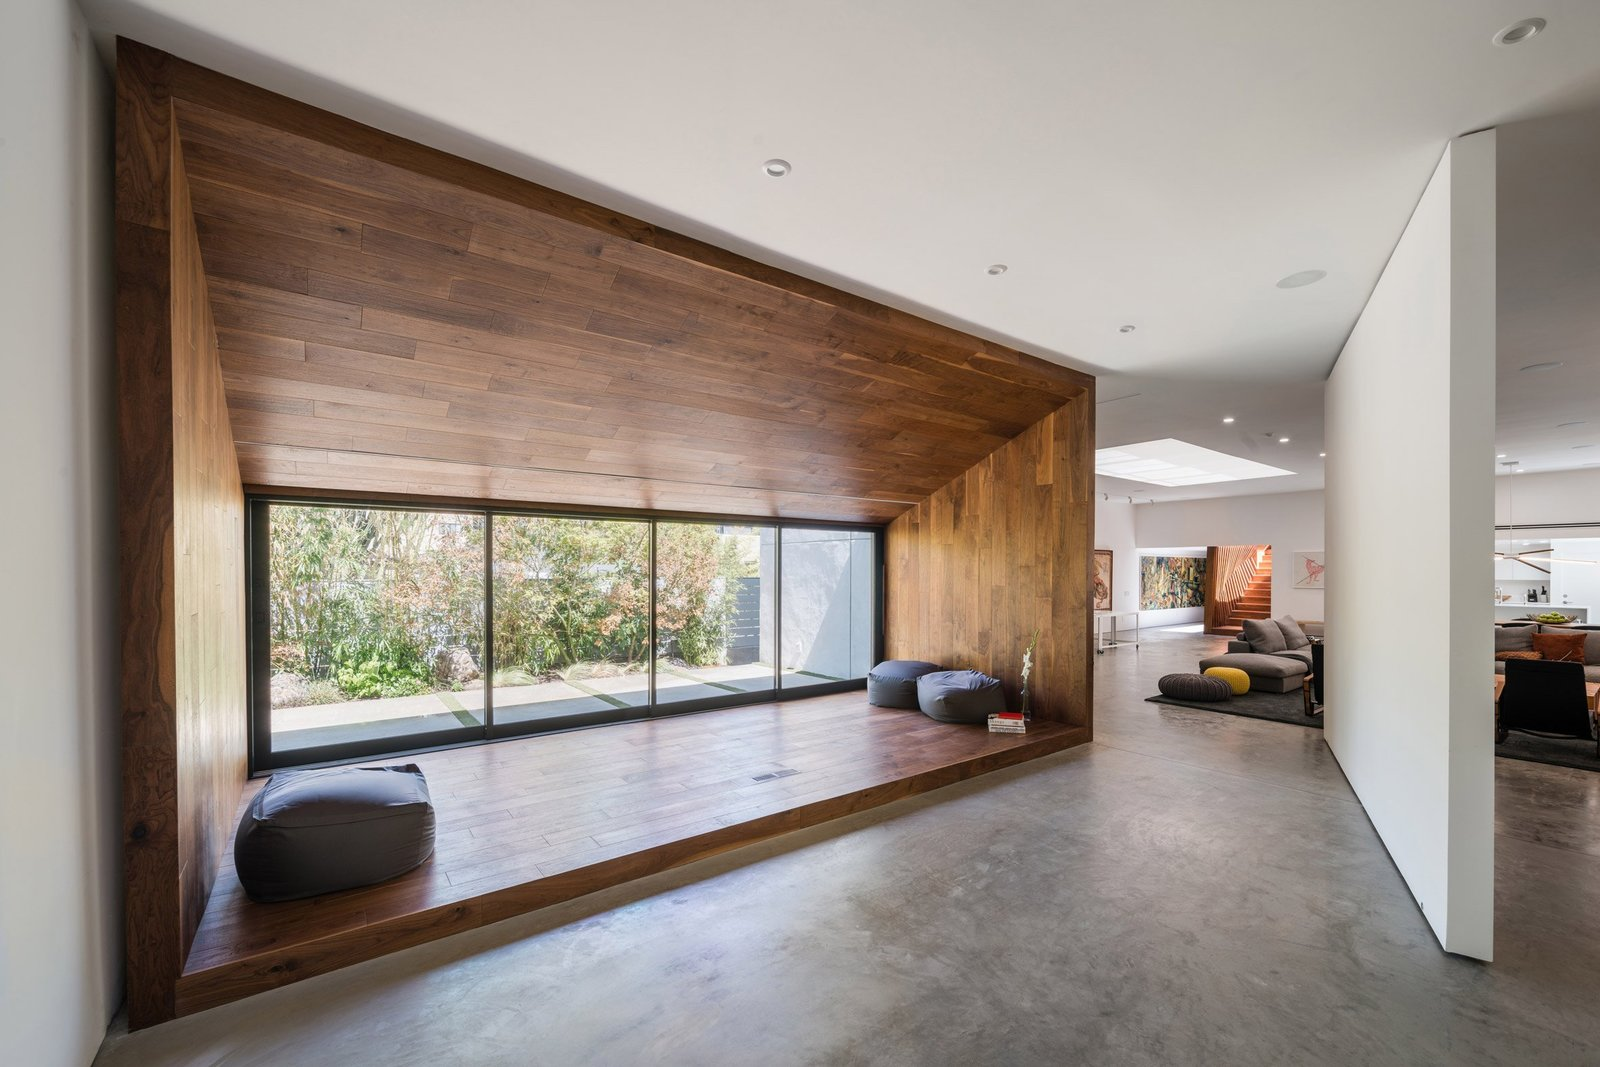 Windows, Sliding Window Type, and Metal  Photo 3 of 7 in 7 Tips For Creating Your Own Home Meditation Zone